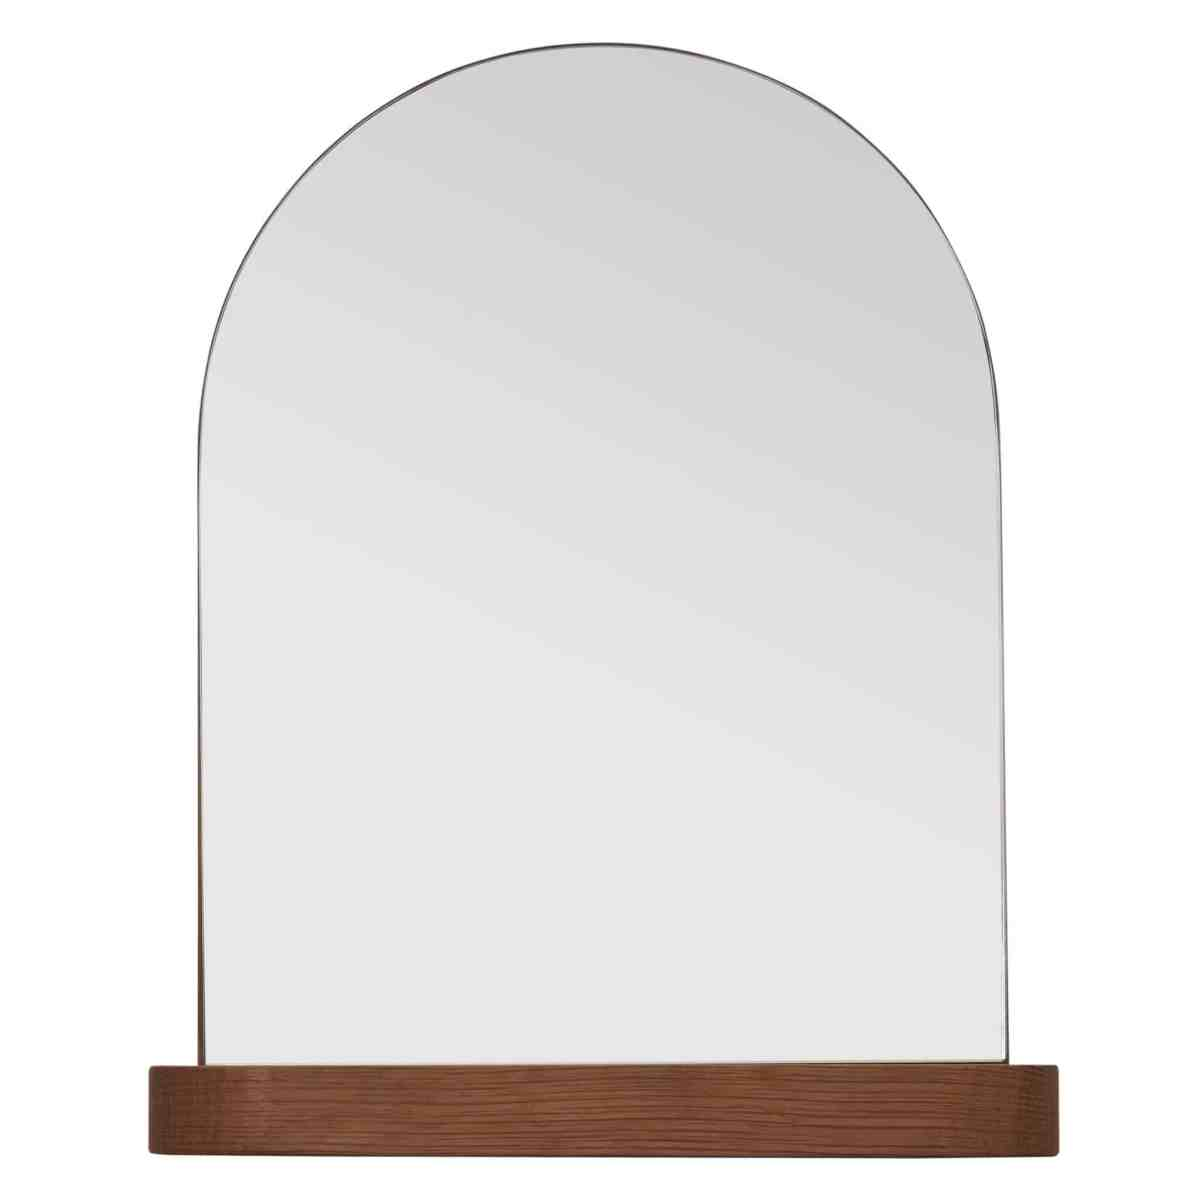 semley-mirror-shelf-another-country-1